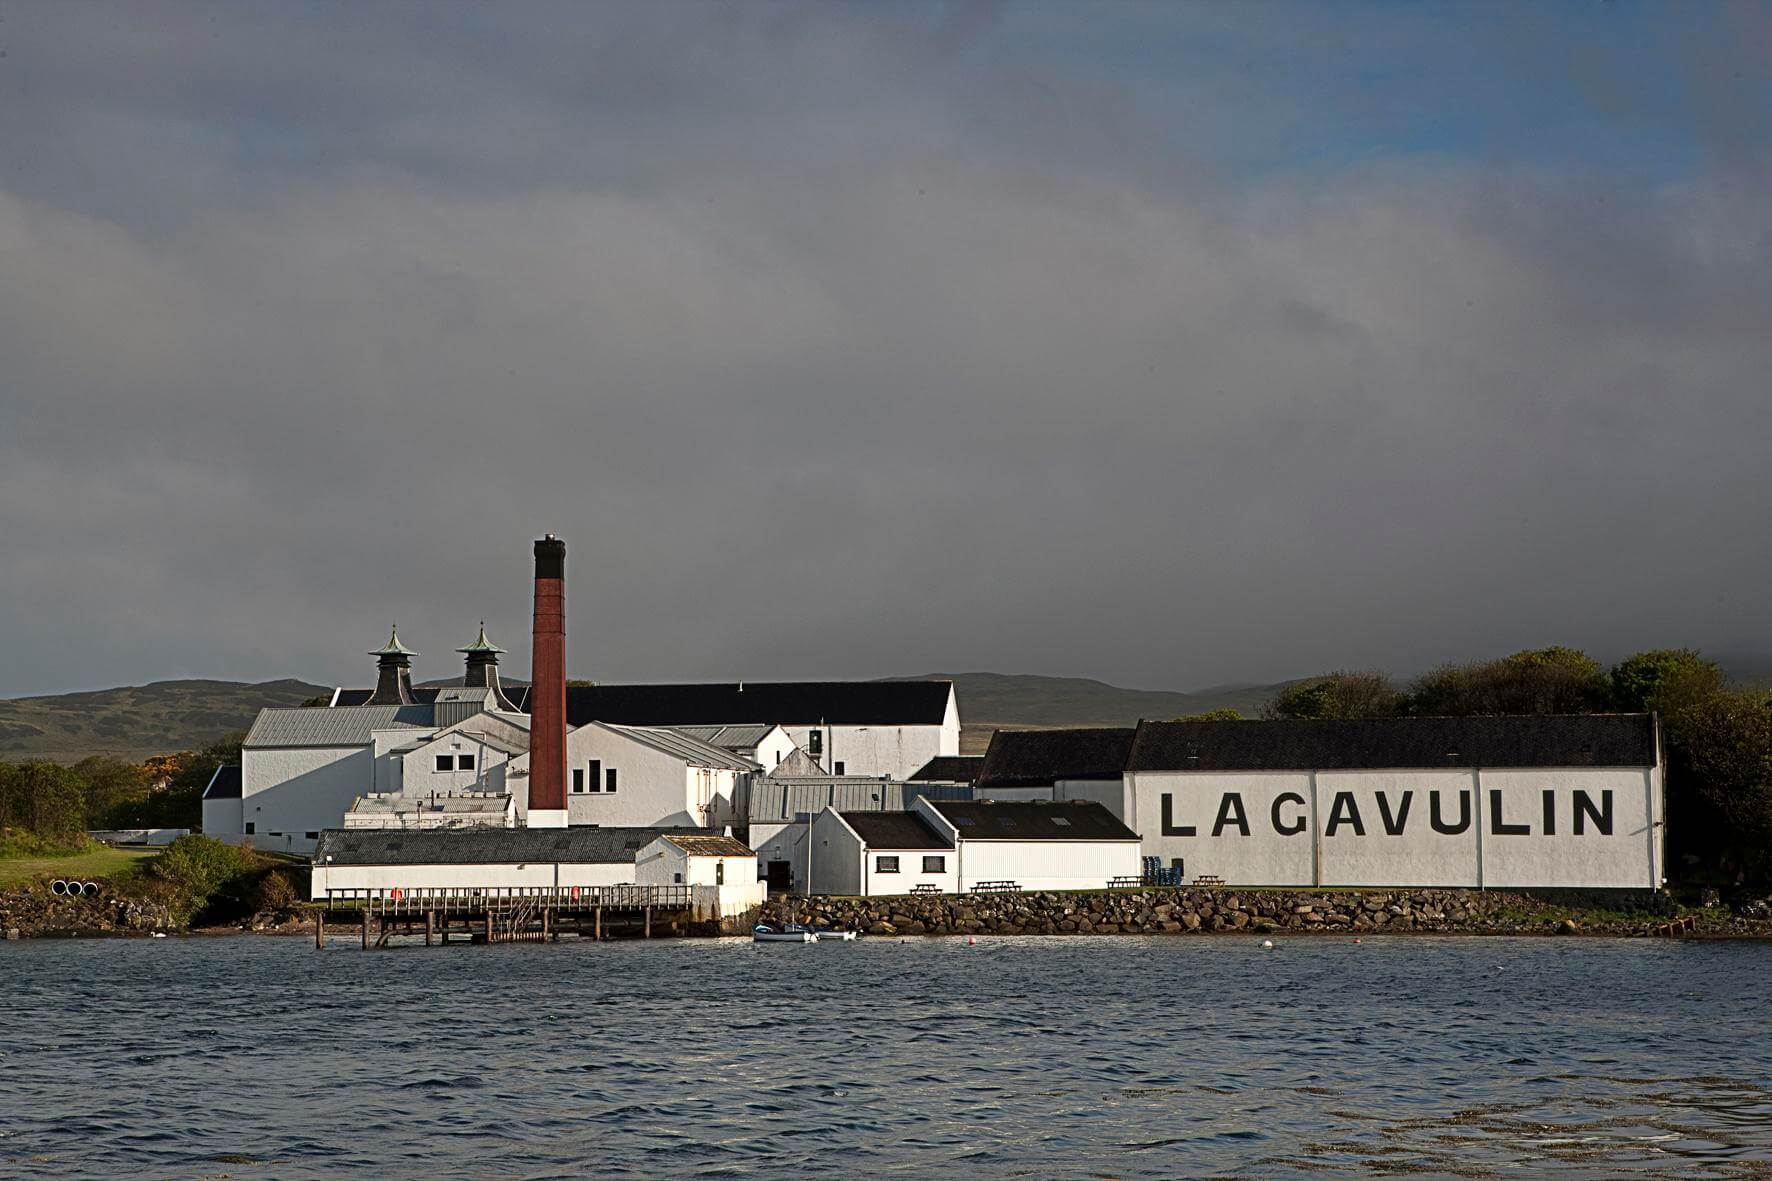 lagavulin_10 - ESCAPEMENT MAGAZINE - The Finer Things in Life - whisky editorial by Philip Day